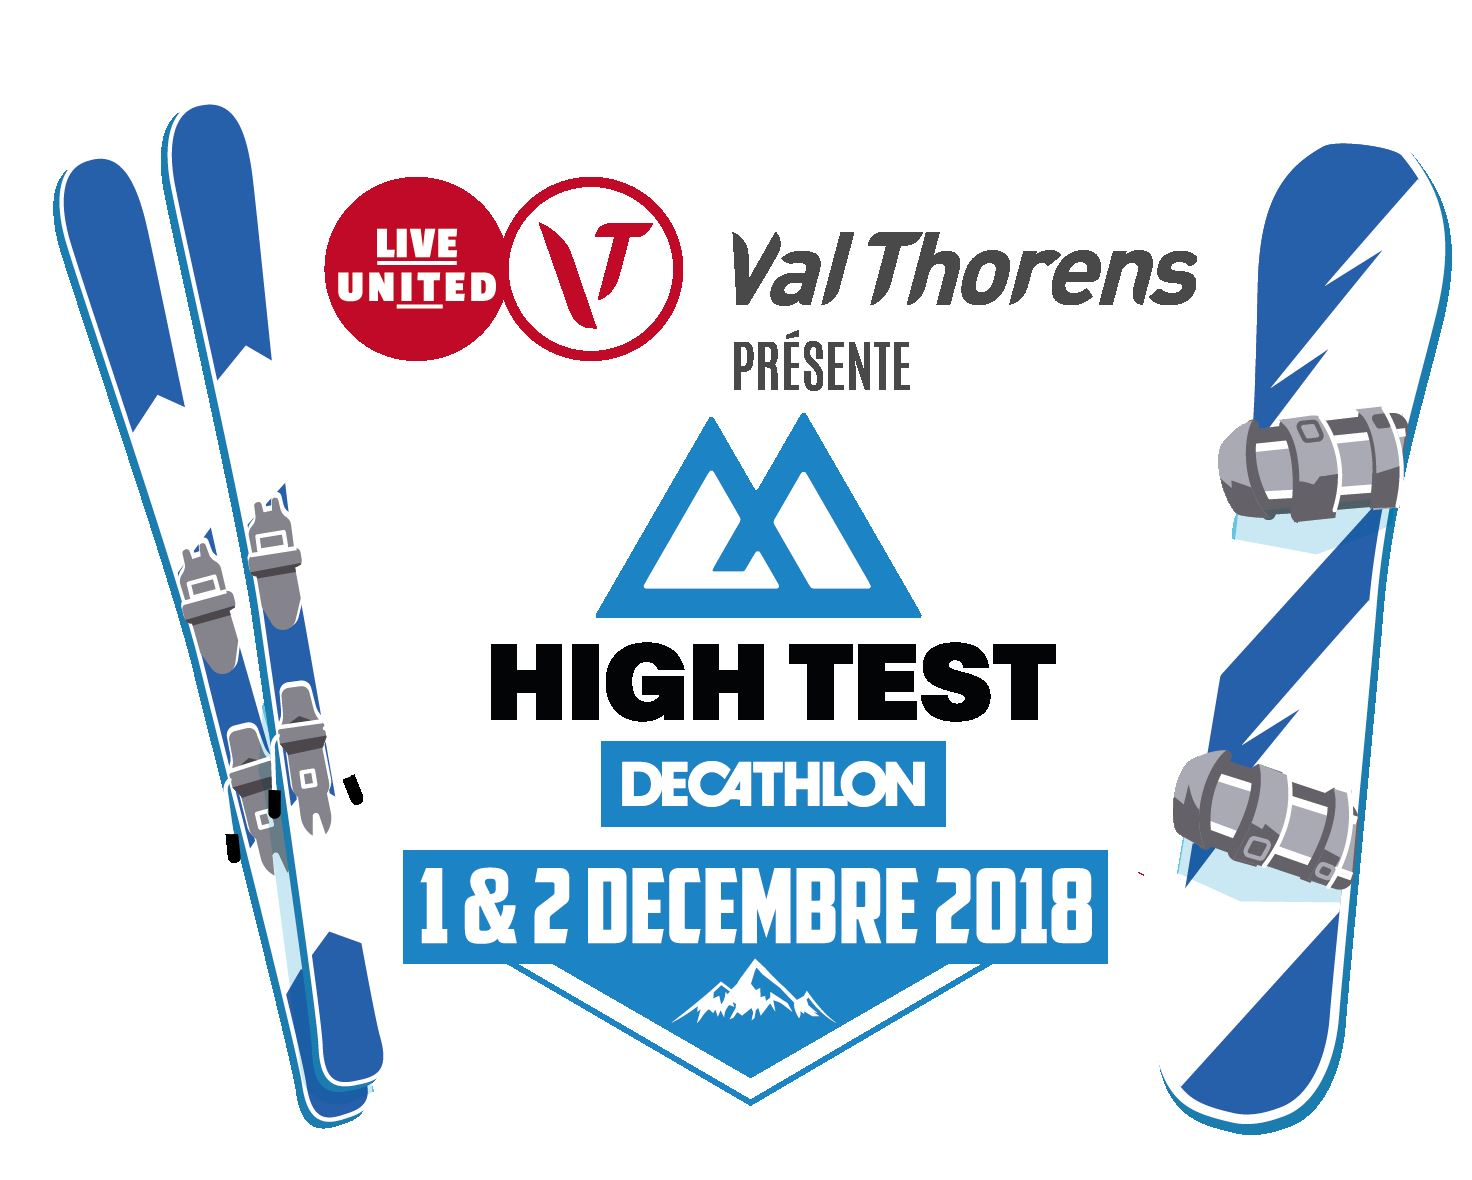 WEEK-END HIGH TEST BY DECATHLON - DU 30/11/18 AU 02/12/18 - A L'UCPA - A PARTIR DE 178 € / PERS*